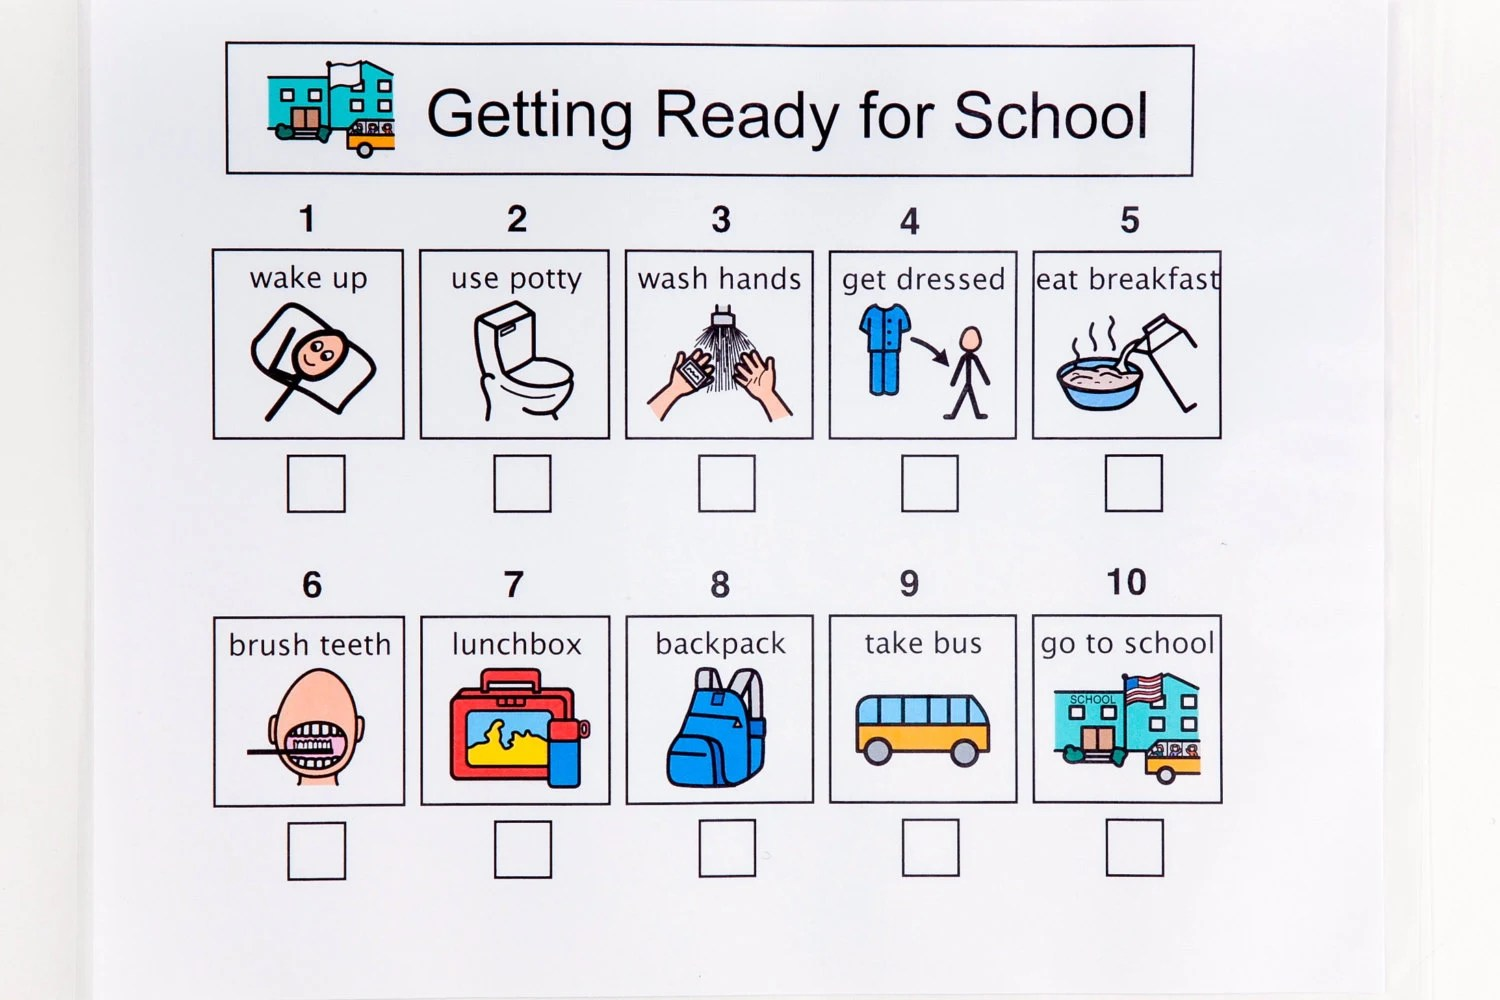 Getting Ready For School Sequence Sheet 10 Steps